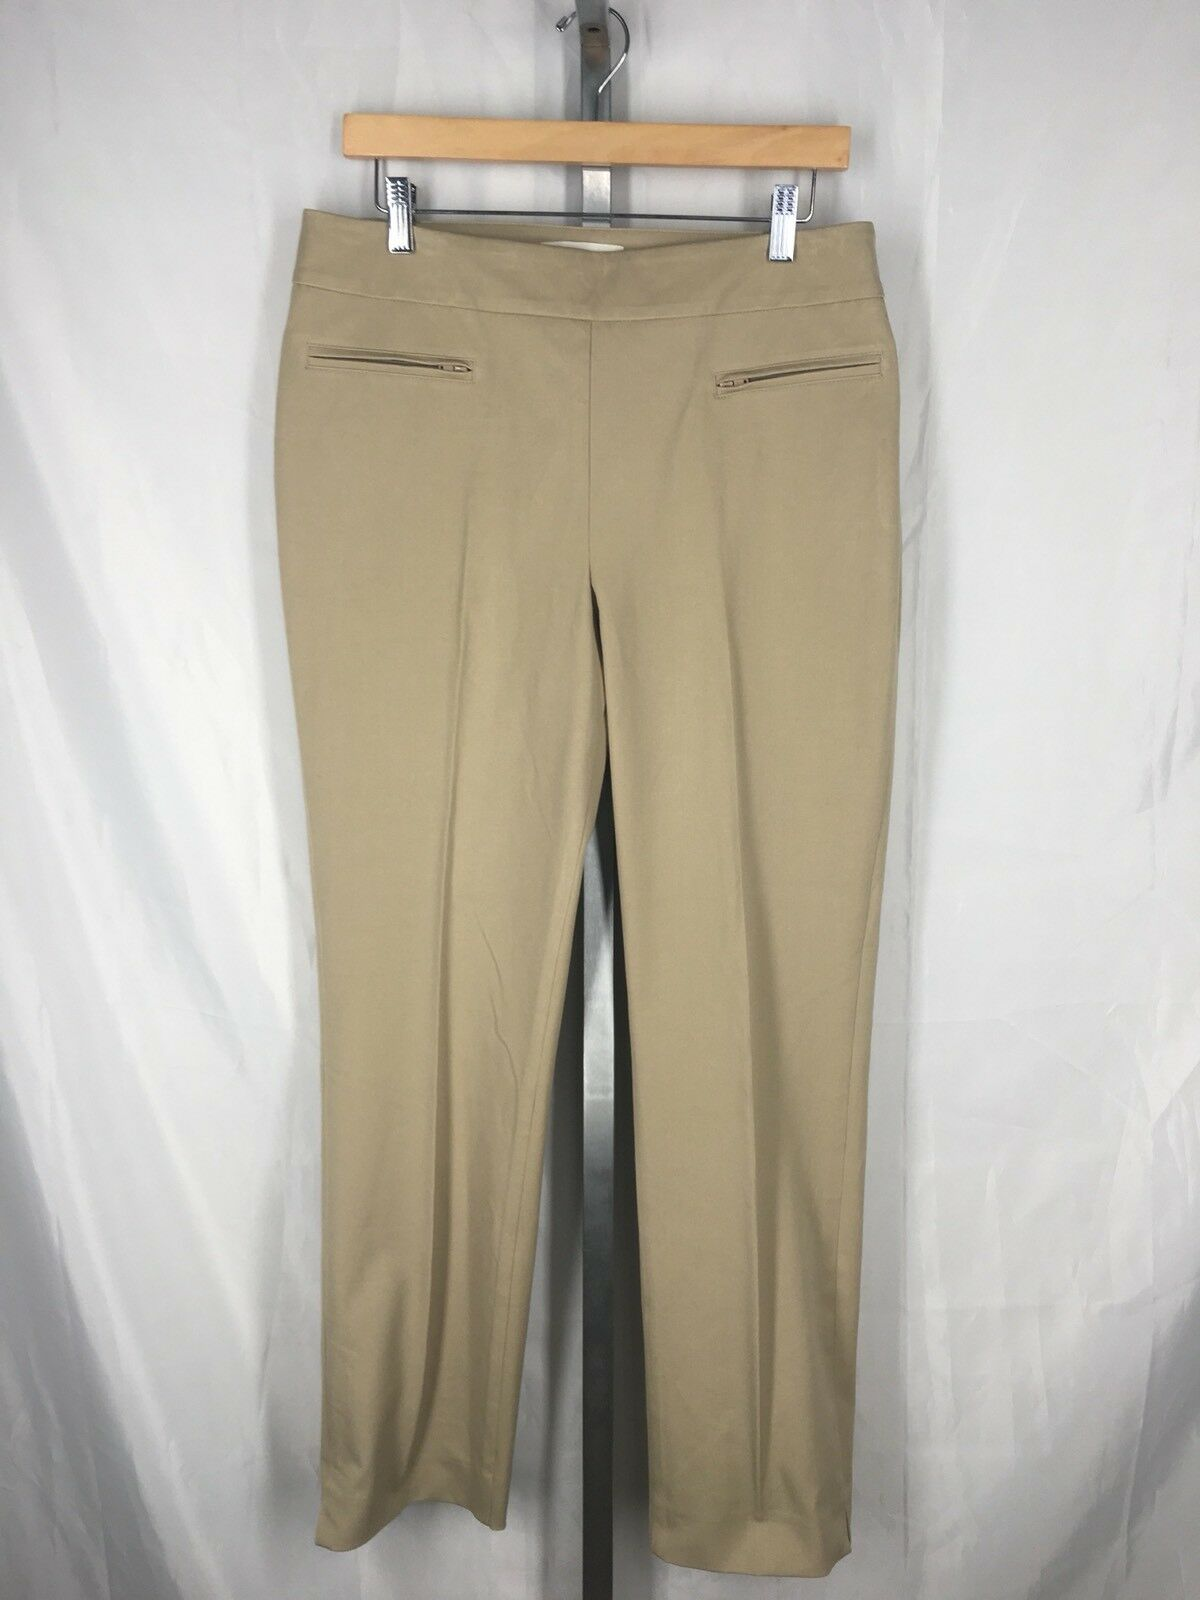 Talbots Outlet Pants Size 10 Slimming Ankle Khaki Tan Beige 29.5 Inseam New